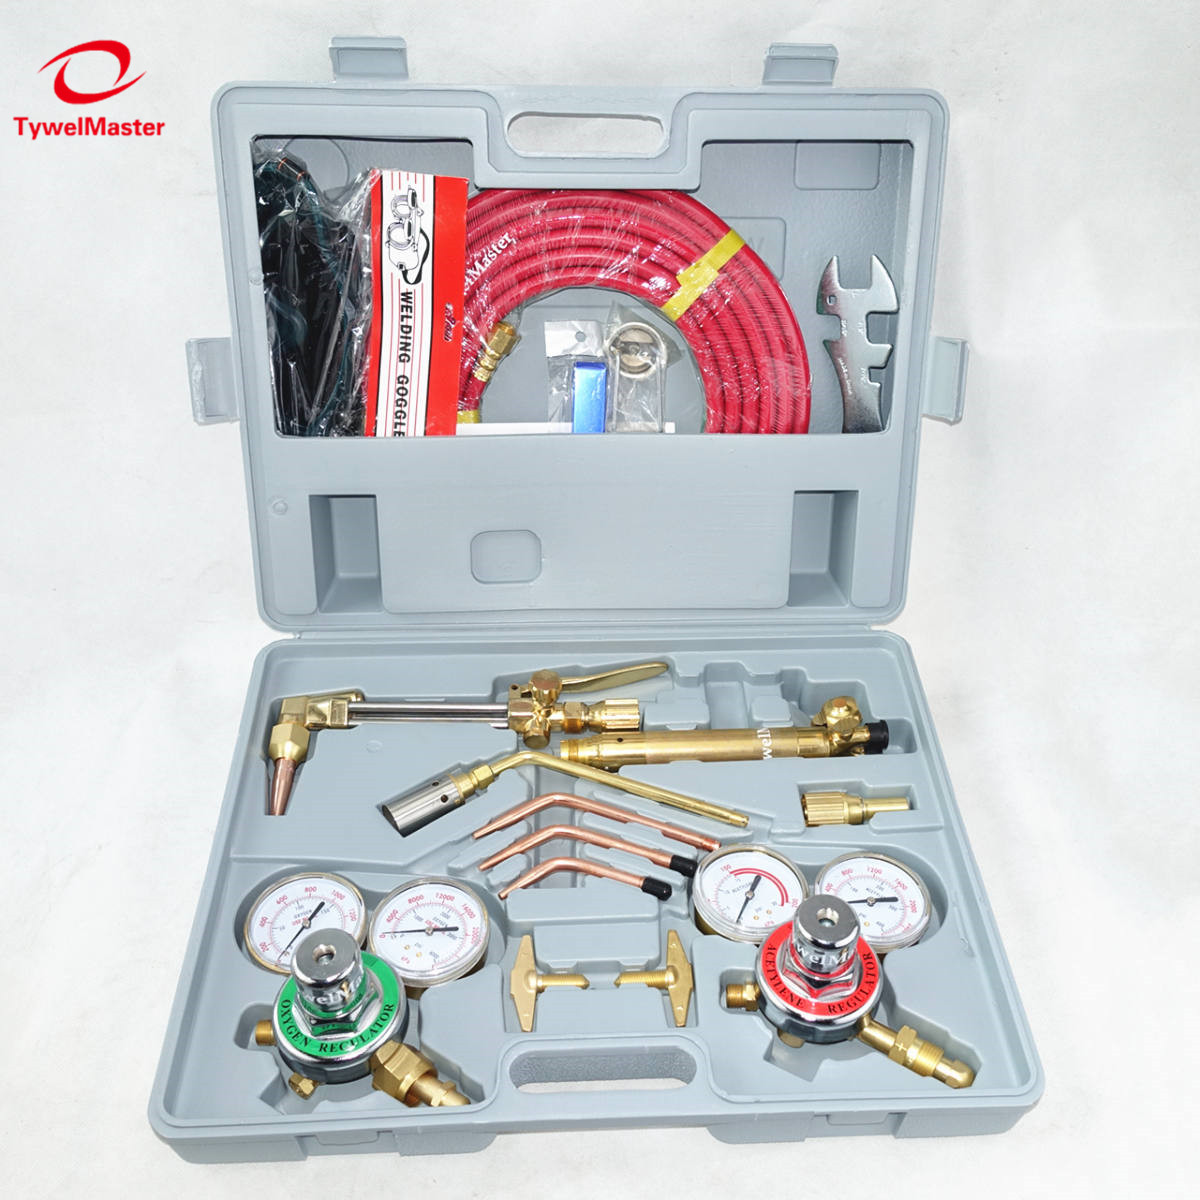 USA Gas Cutting And Welding Kit 6290 Tips Welding Goggle Spark Lighter Tip Cleaner Twin Hose Metal Cutting Welding Tool Set